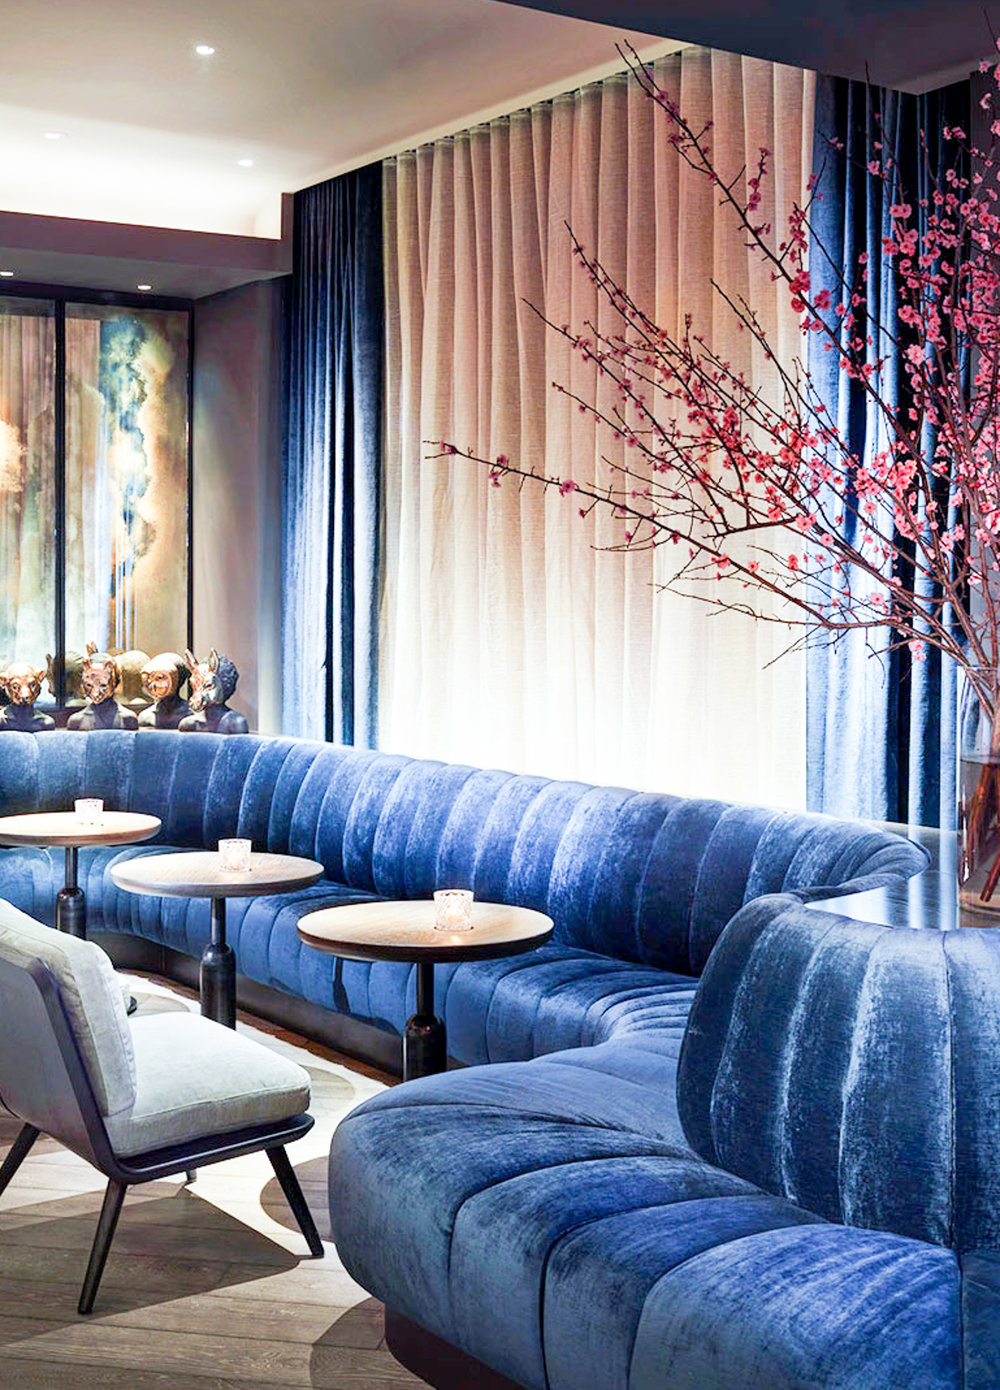 Whether you're a native New Yorker or just a visitor, there's something alluring about a well-established hotel bar. From views to cocktail presentation to beautiful decor, here are the 10 best hotel bars in NYC.